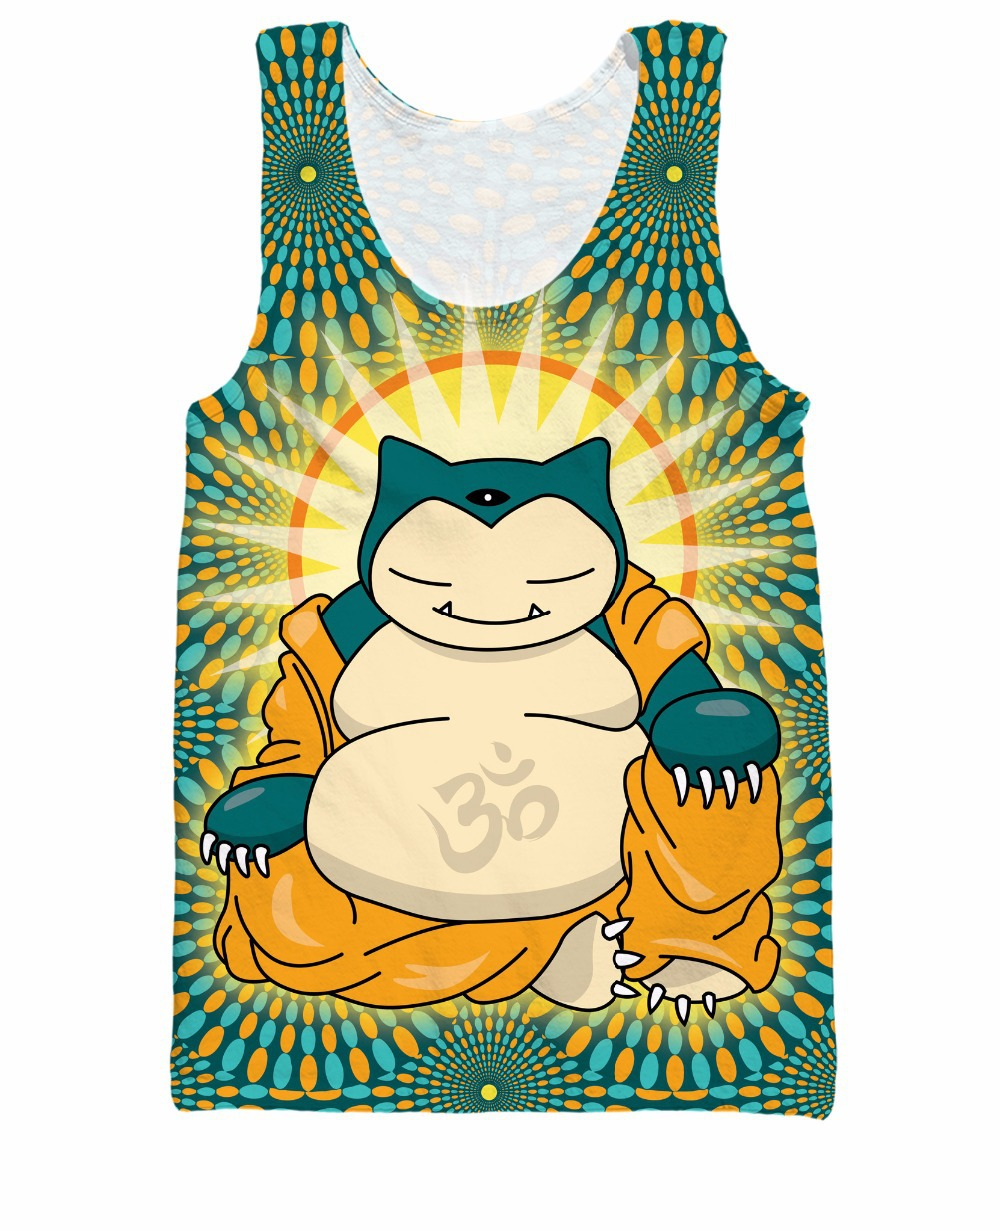 Buddha Snorlax   Tank     Top   Sleeping Type Pokemon Snorlax As Buddha 3d Print Casual Tee Summer Style Vest Jersey For Women Men